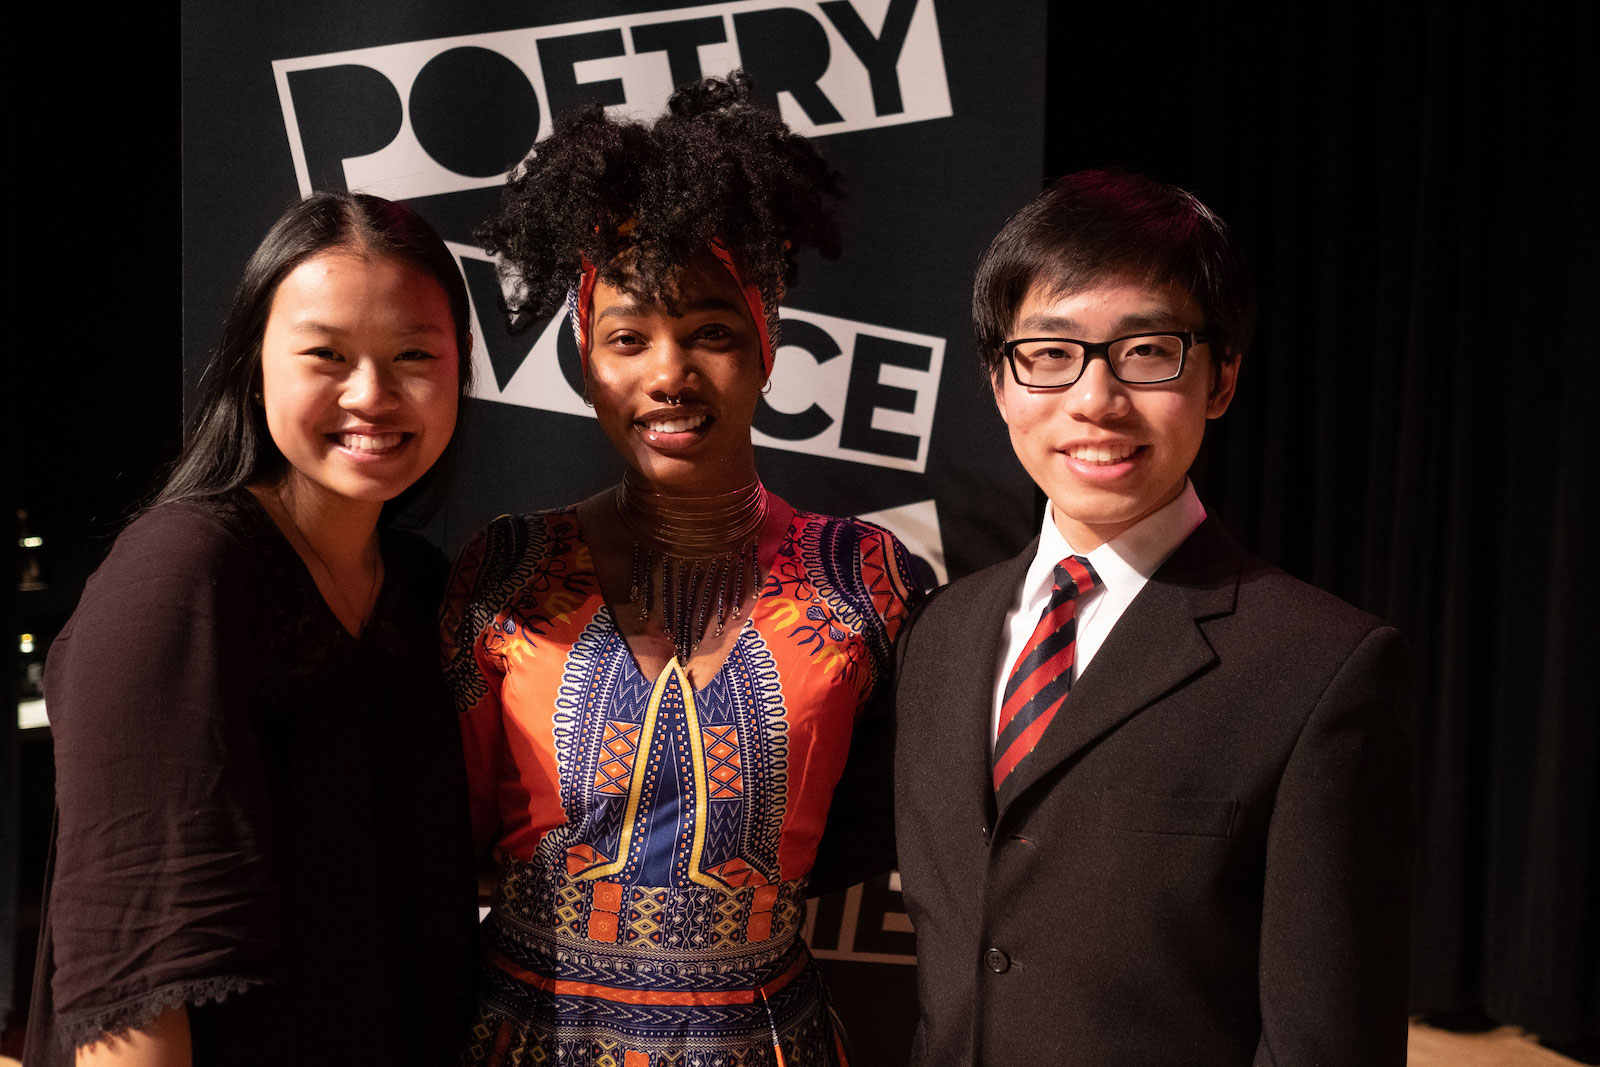 Students win $25,000 in national poetry recitation